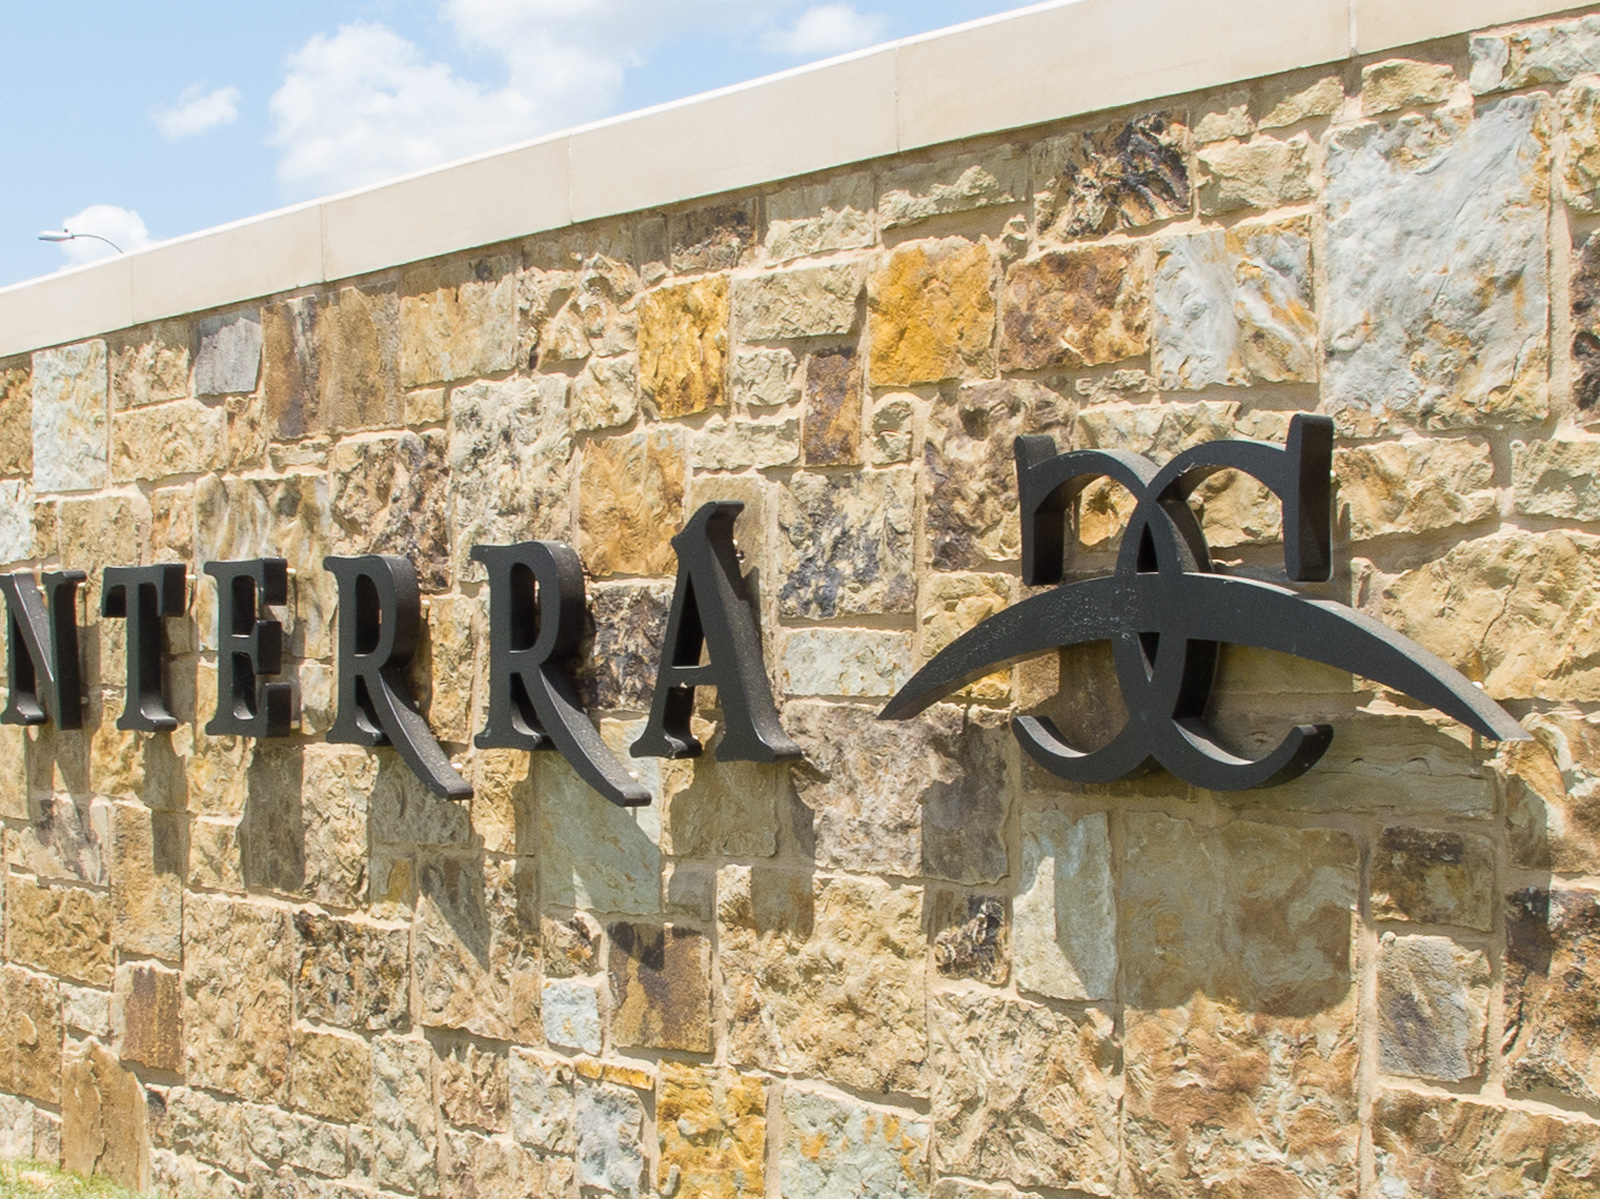 Close up view from side of custom halo-illuminated channel letters and logo graphics mounted to stone monument.